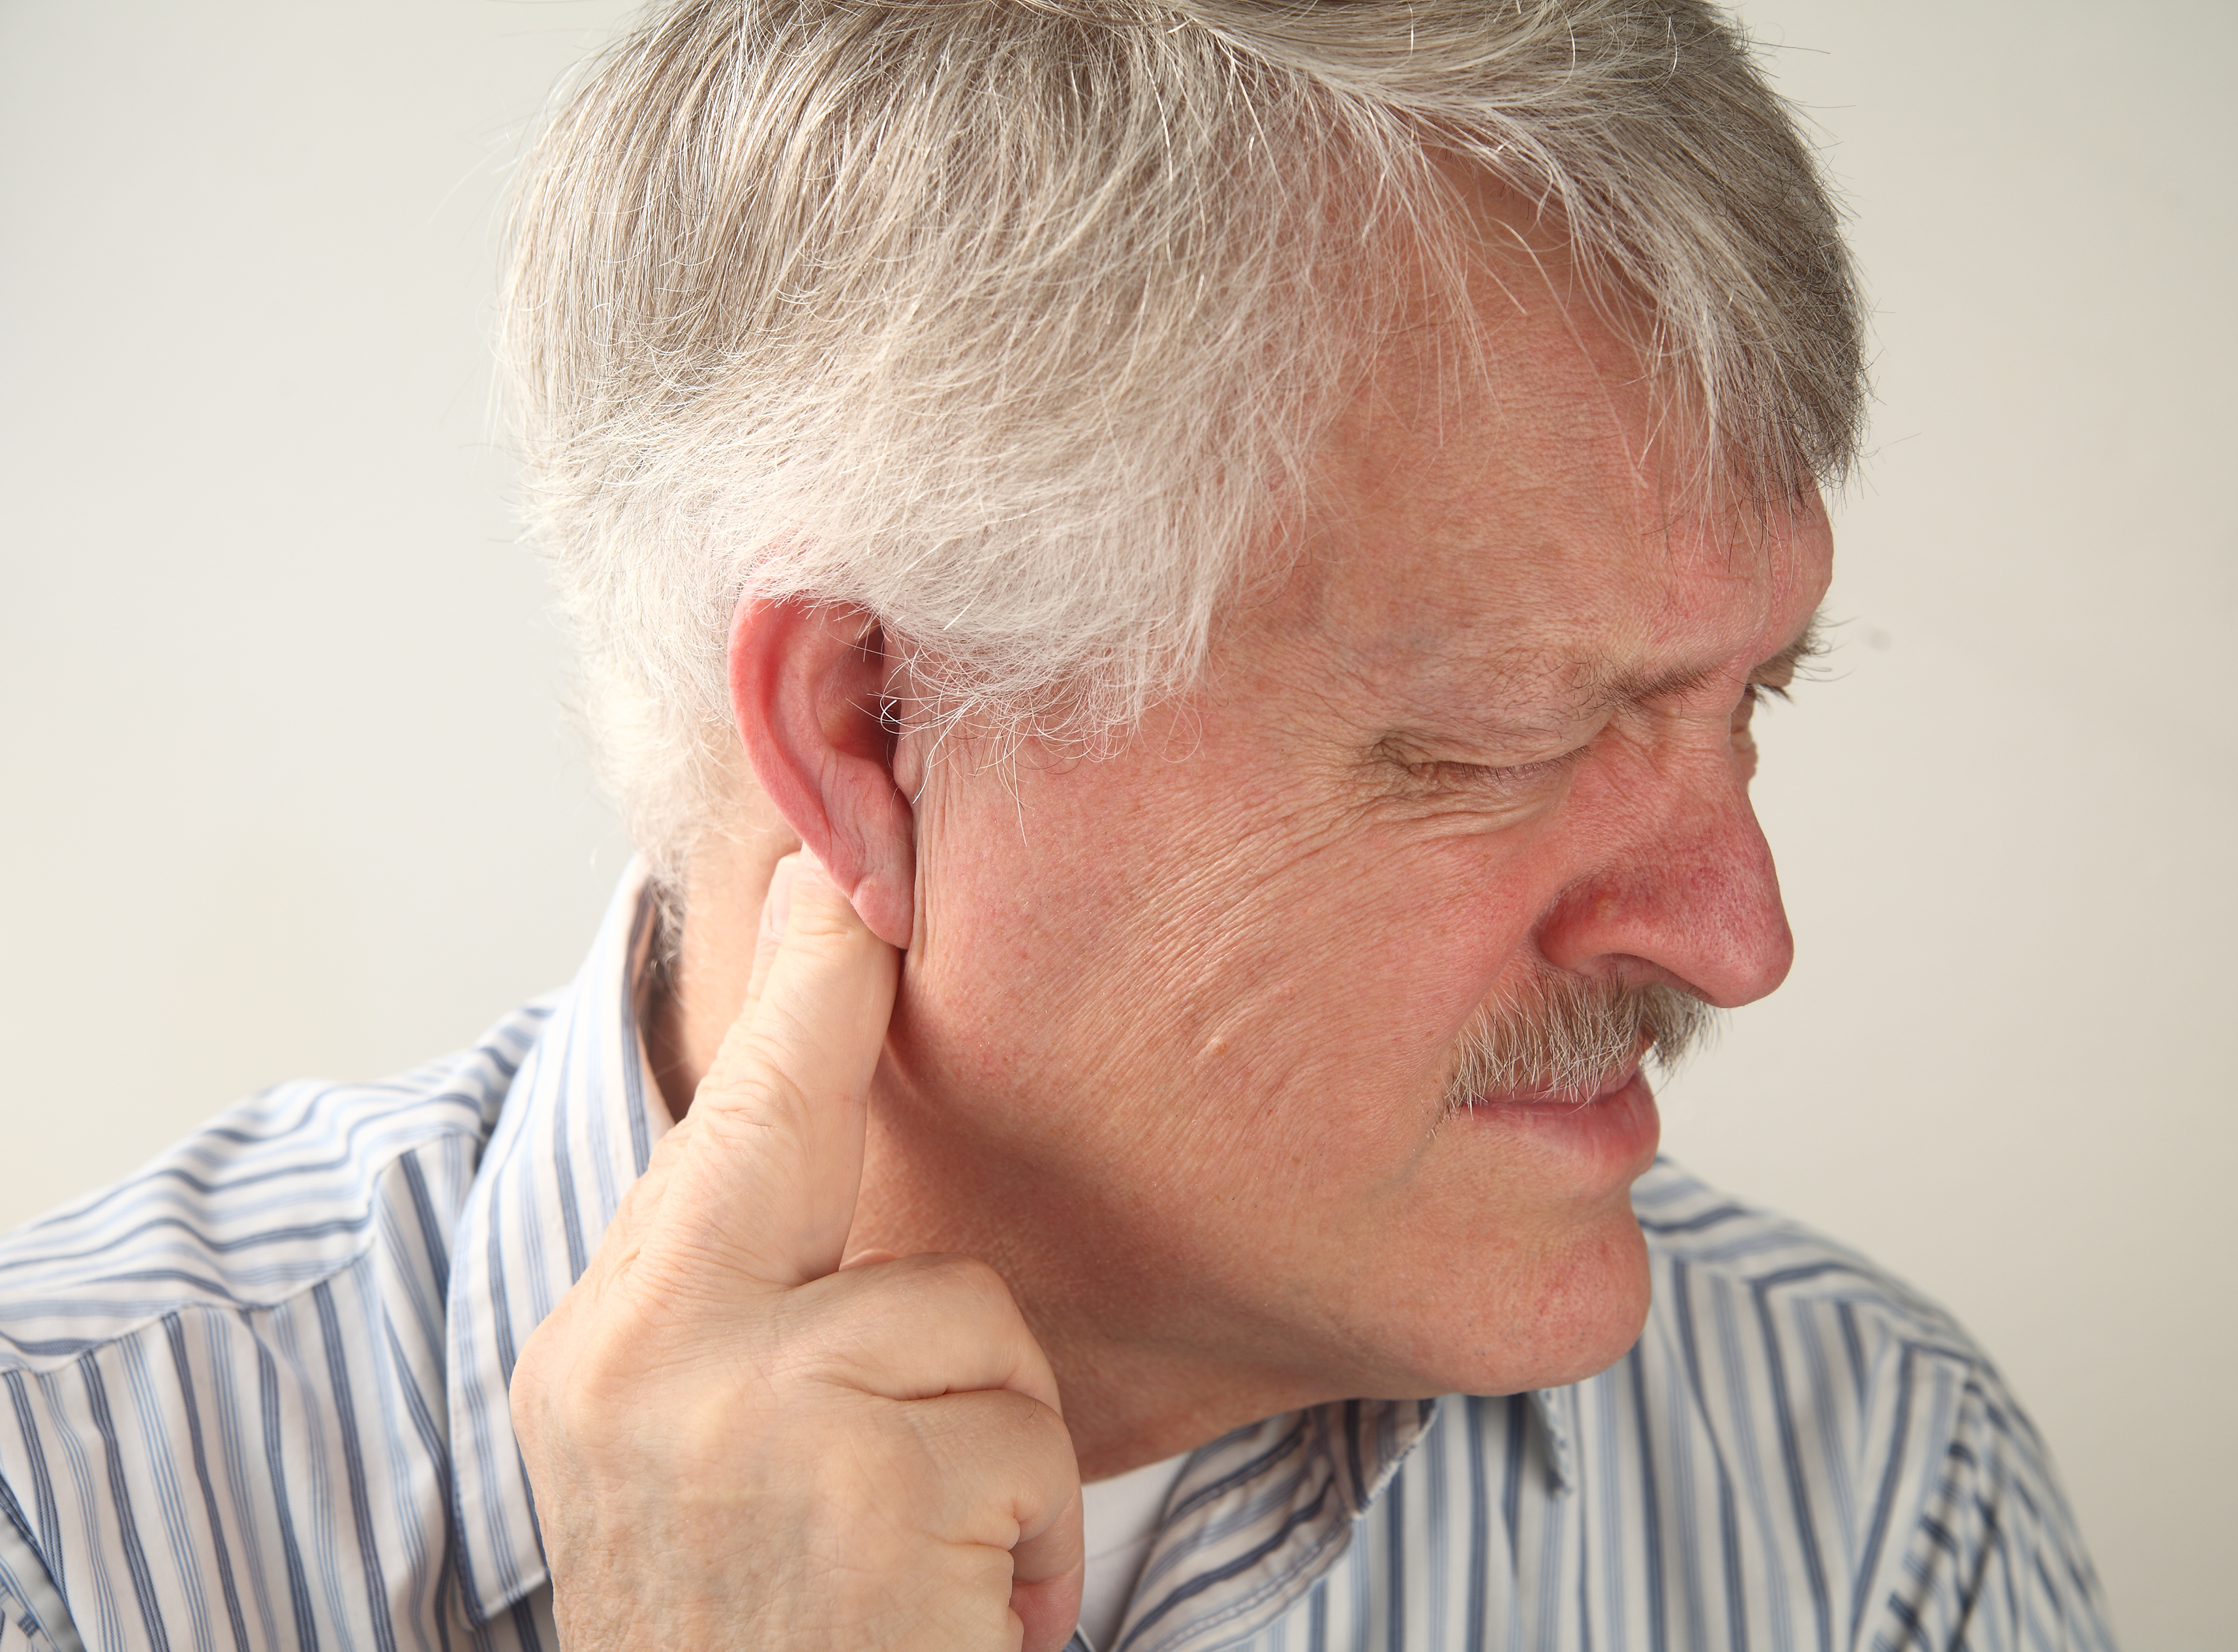 What Causes Pain Behind the Ear? Relief Options for Ear Pain